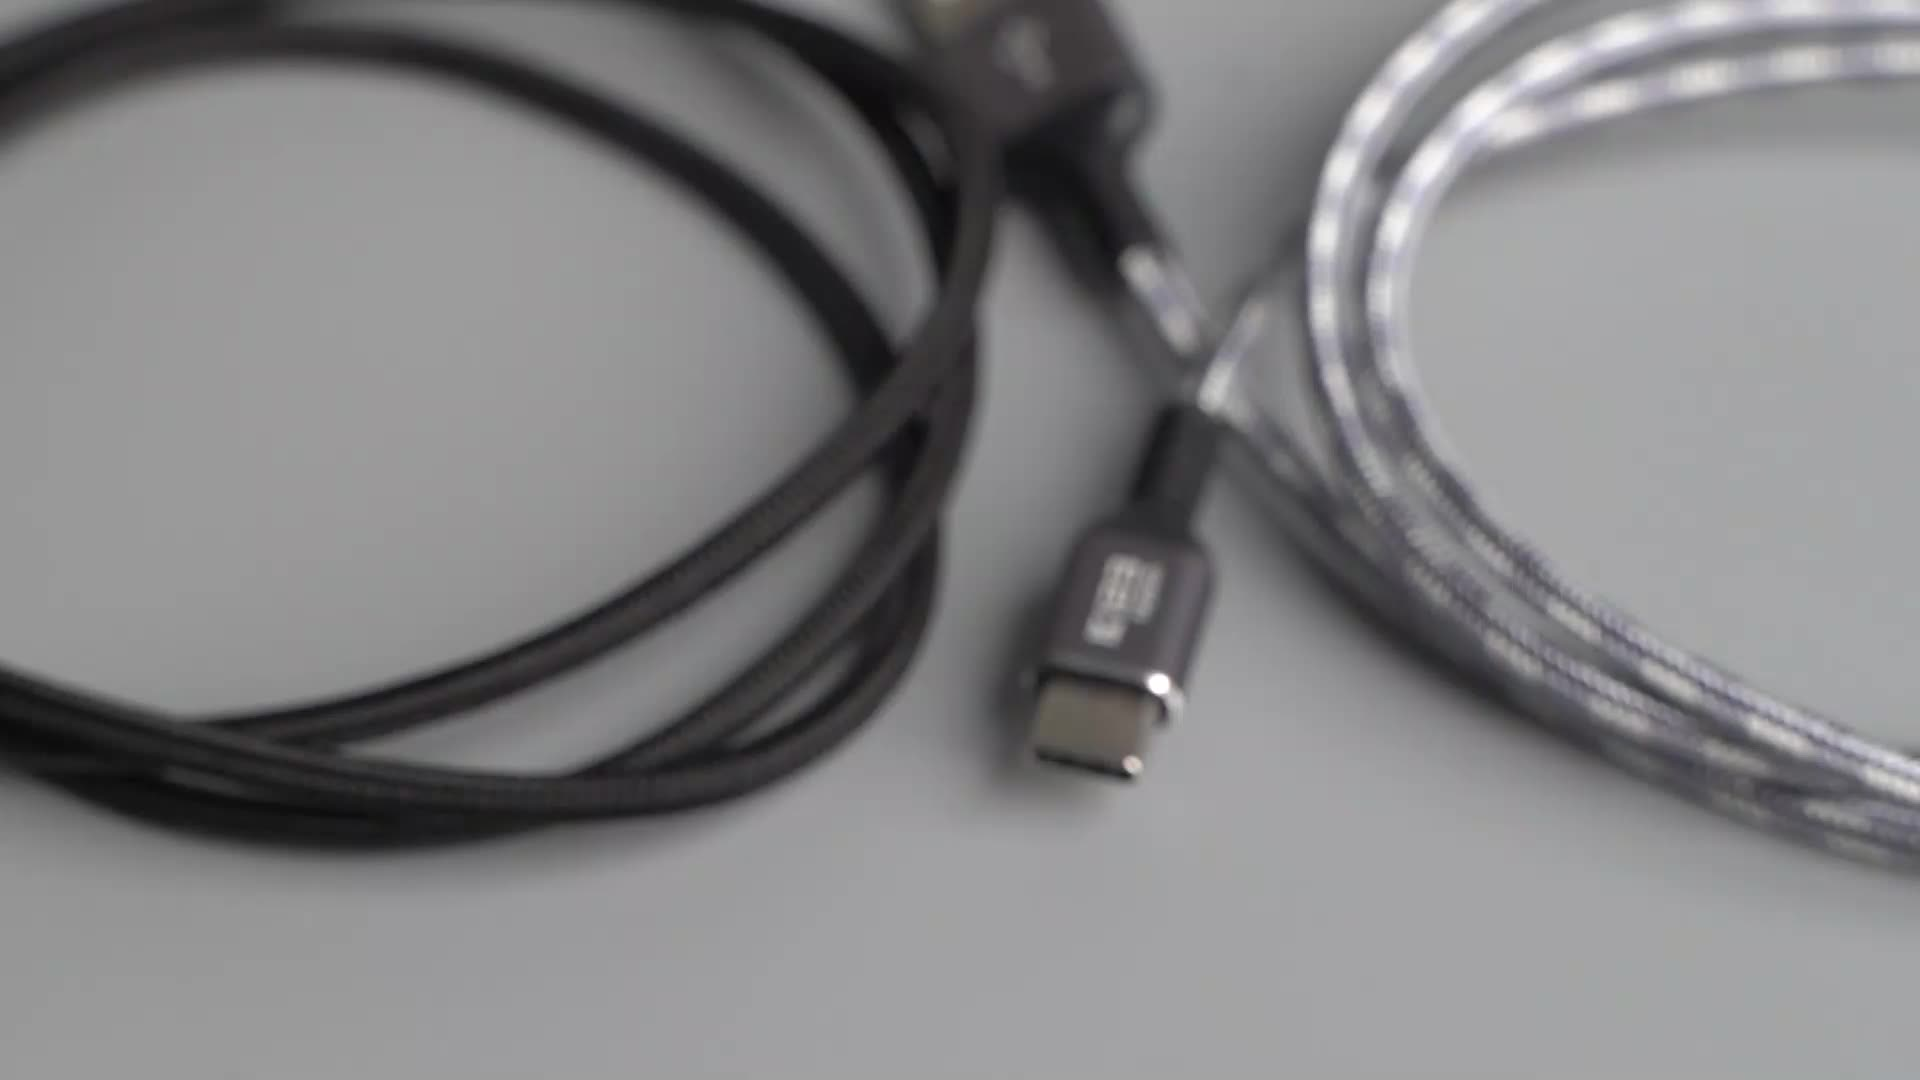 MFi Factory High Quality Usb Data Line For iPhone Cable Charger 5V 3A Fast Charging USB Cable For Iphone charging cable